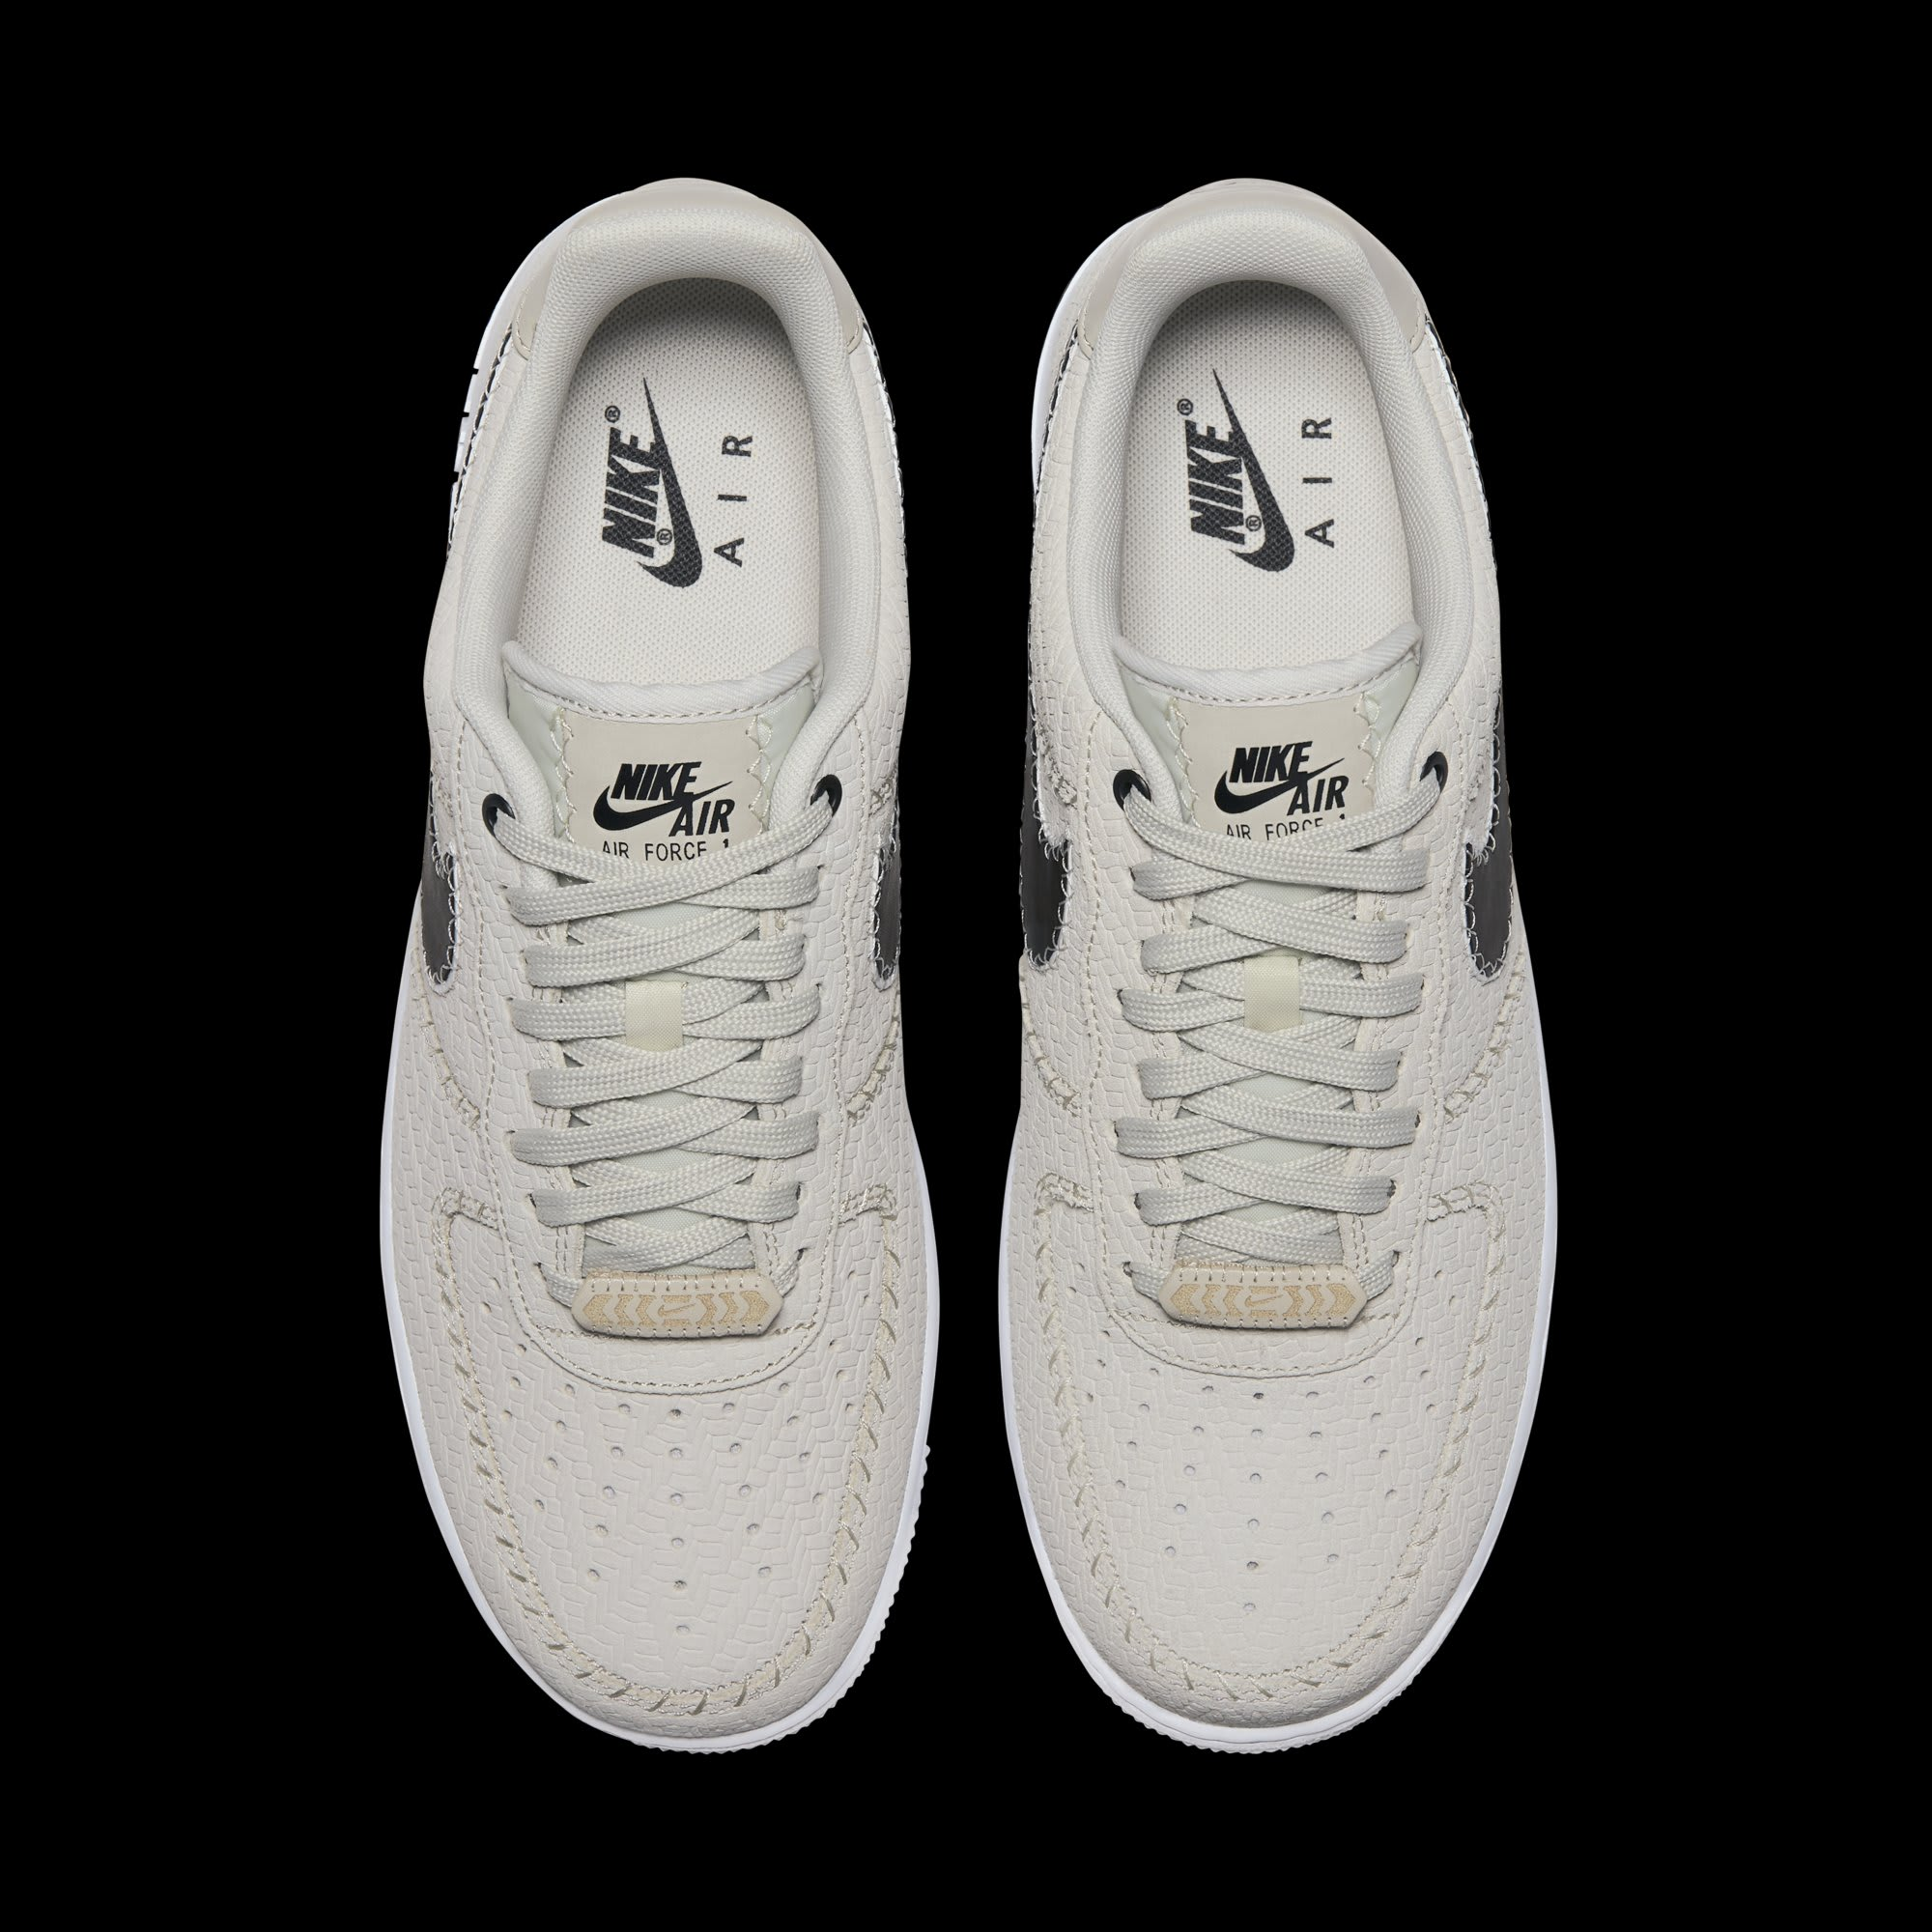 Nike Air Force 1 Low 'N7' AO2369-001 (Top)